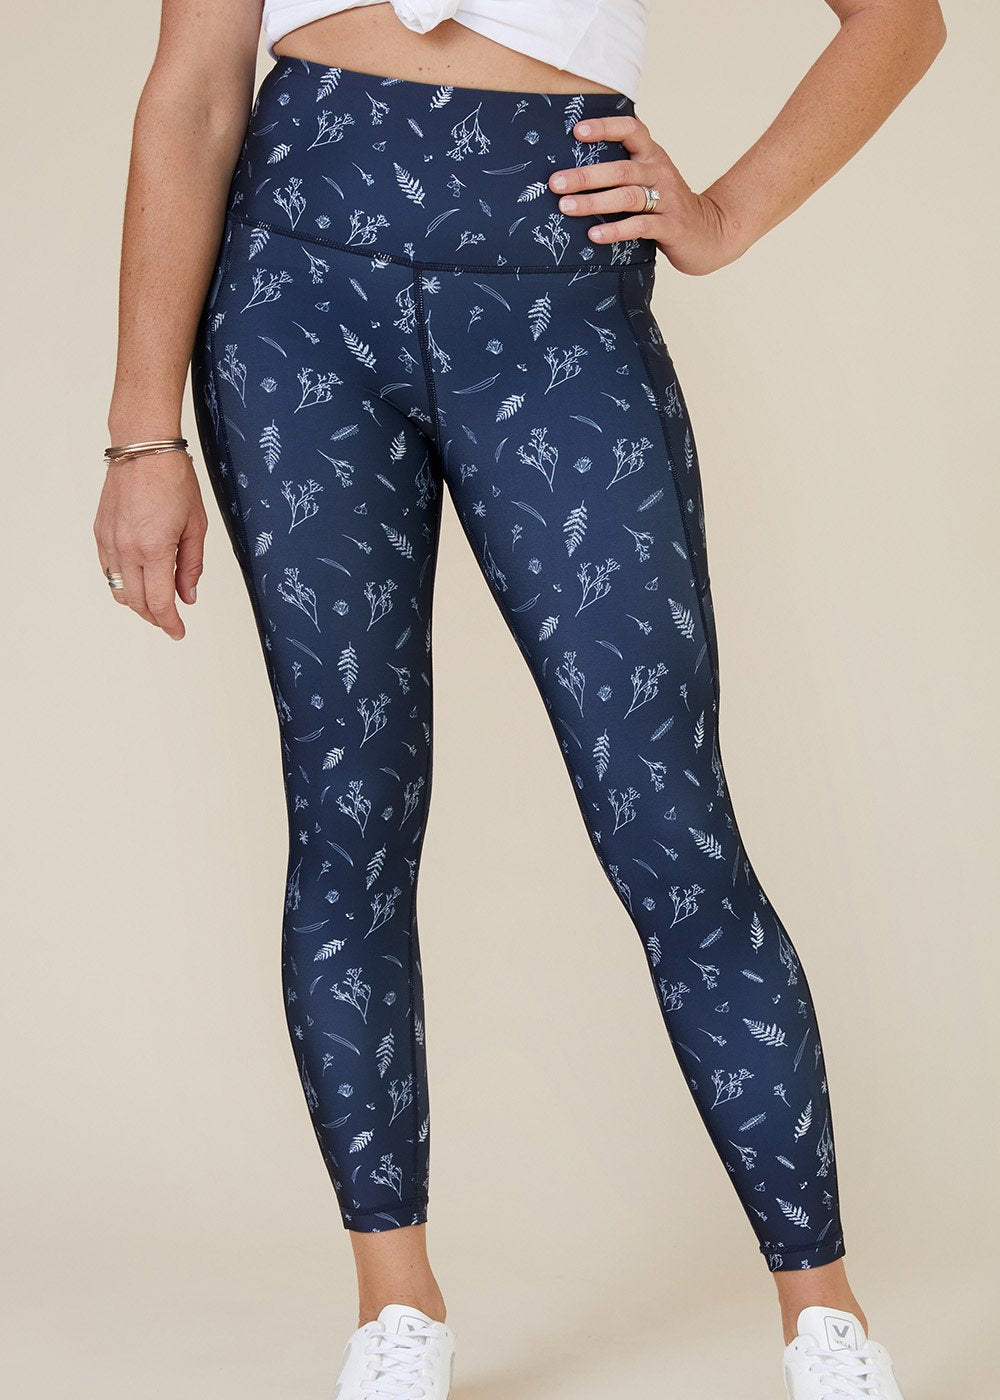 Sustainable Australian Navy Blue 7/8 ankle length leggings with side phone pockets with delicate floral botanical print in white?id=28046180155475